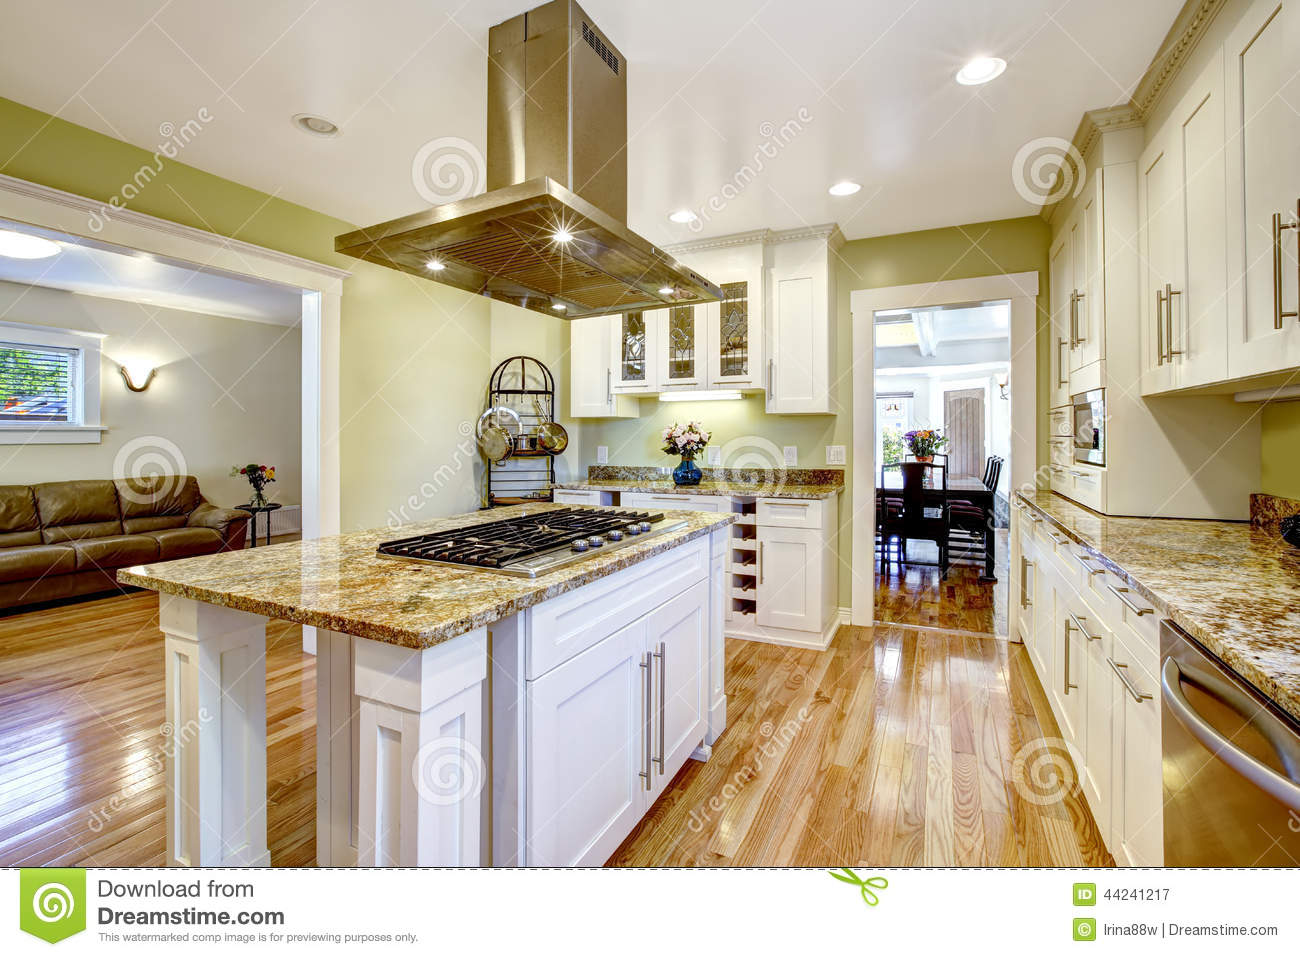 Kitchen Design Island Stove Kitchen Island With Built In Stove Granite Top And Hood